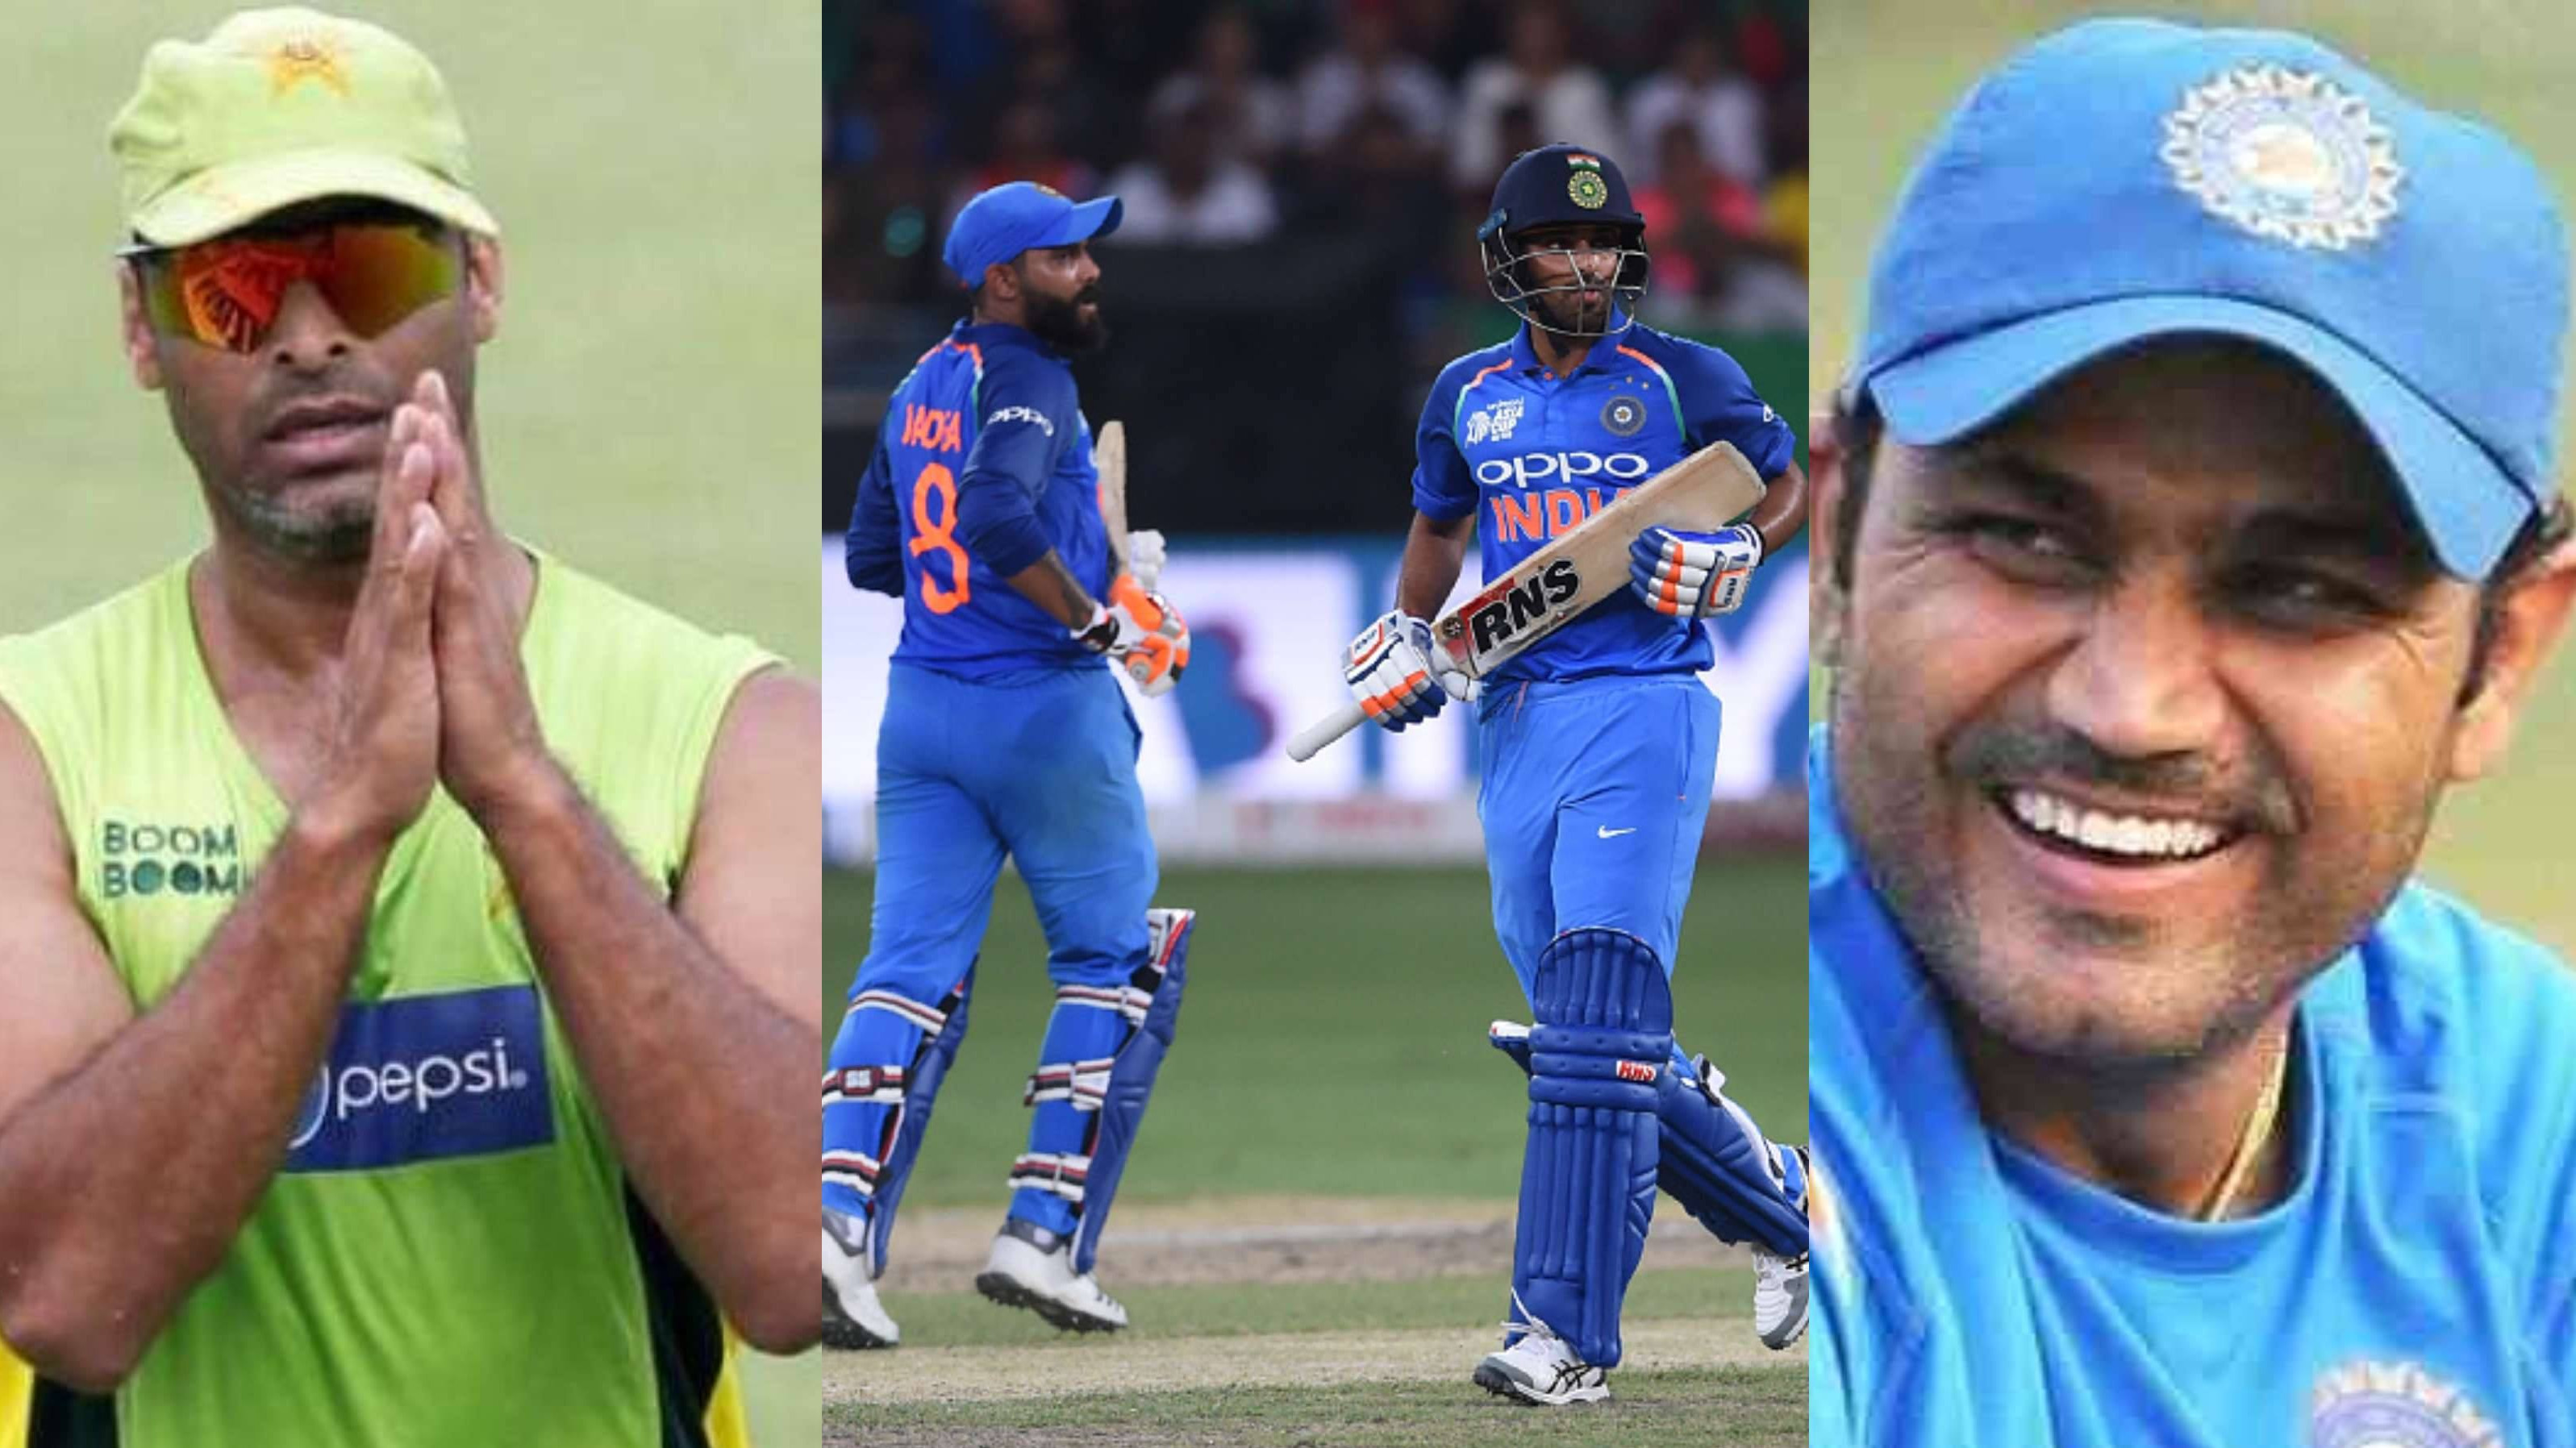 ASIA CUP 2018: Twitter reacts as India secures a thrilling 3-wicket victory over Bangladesh to clinch the title